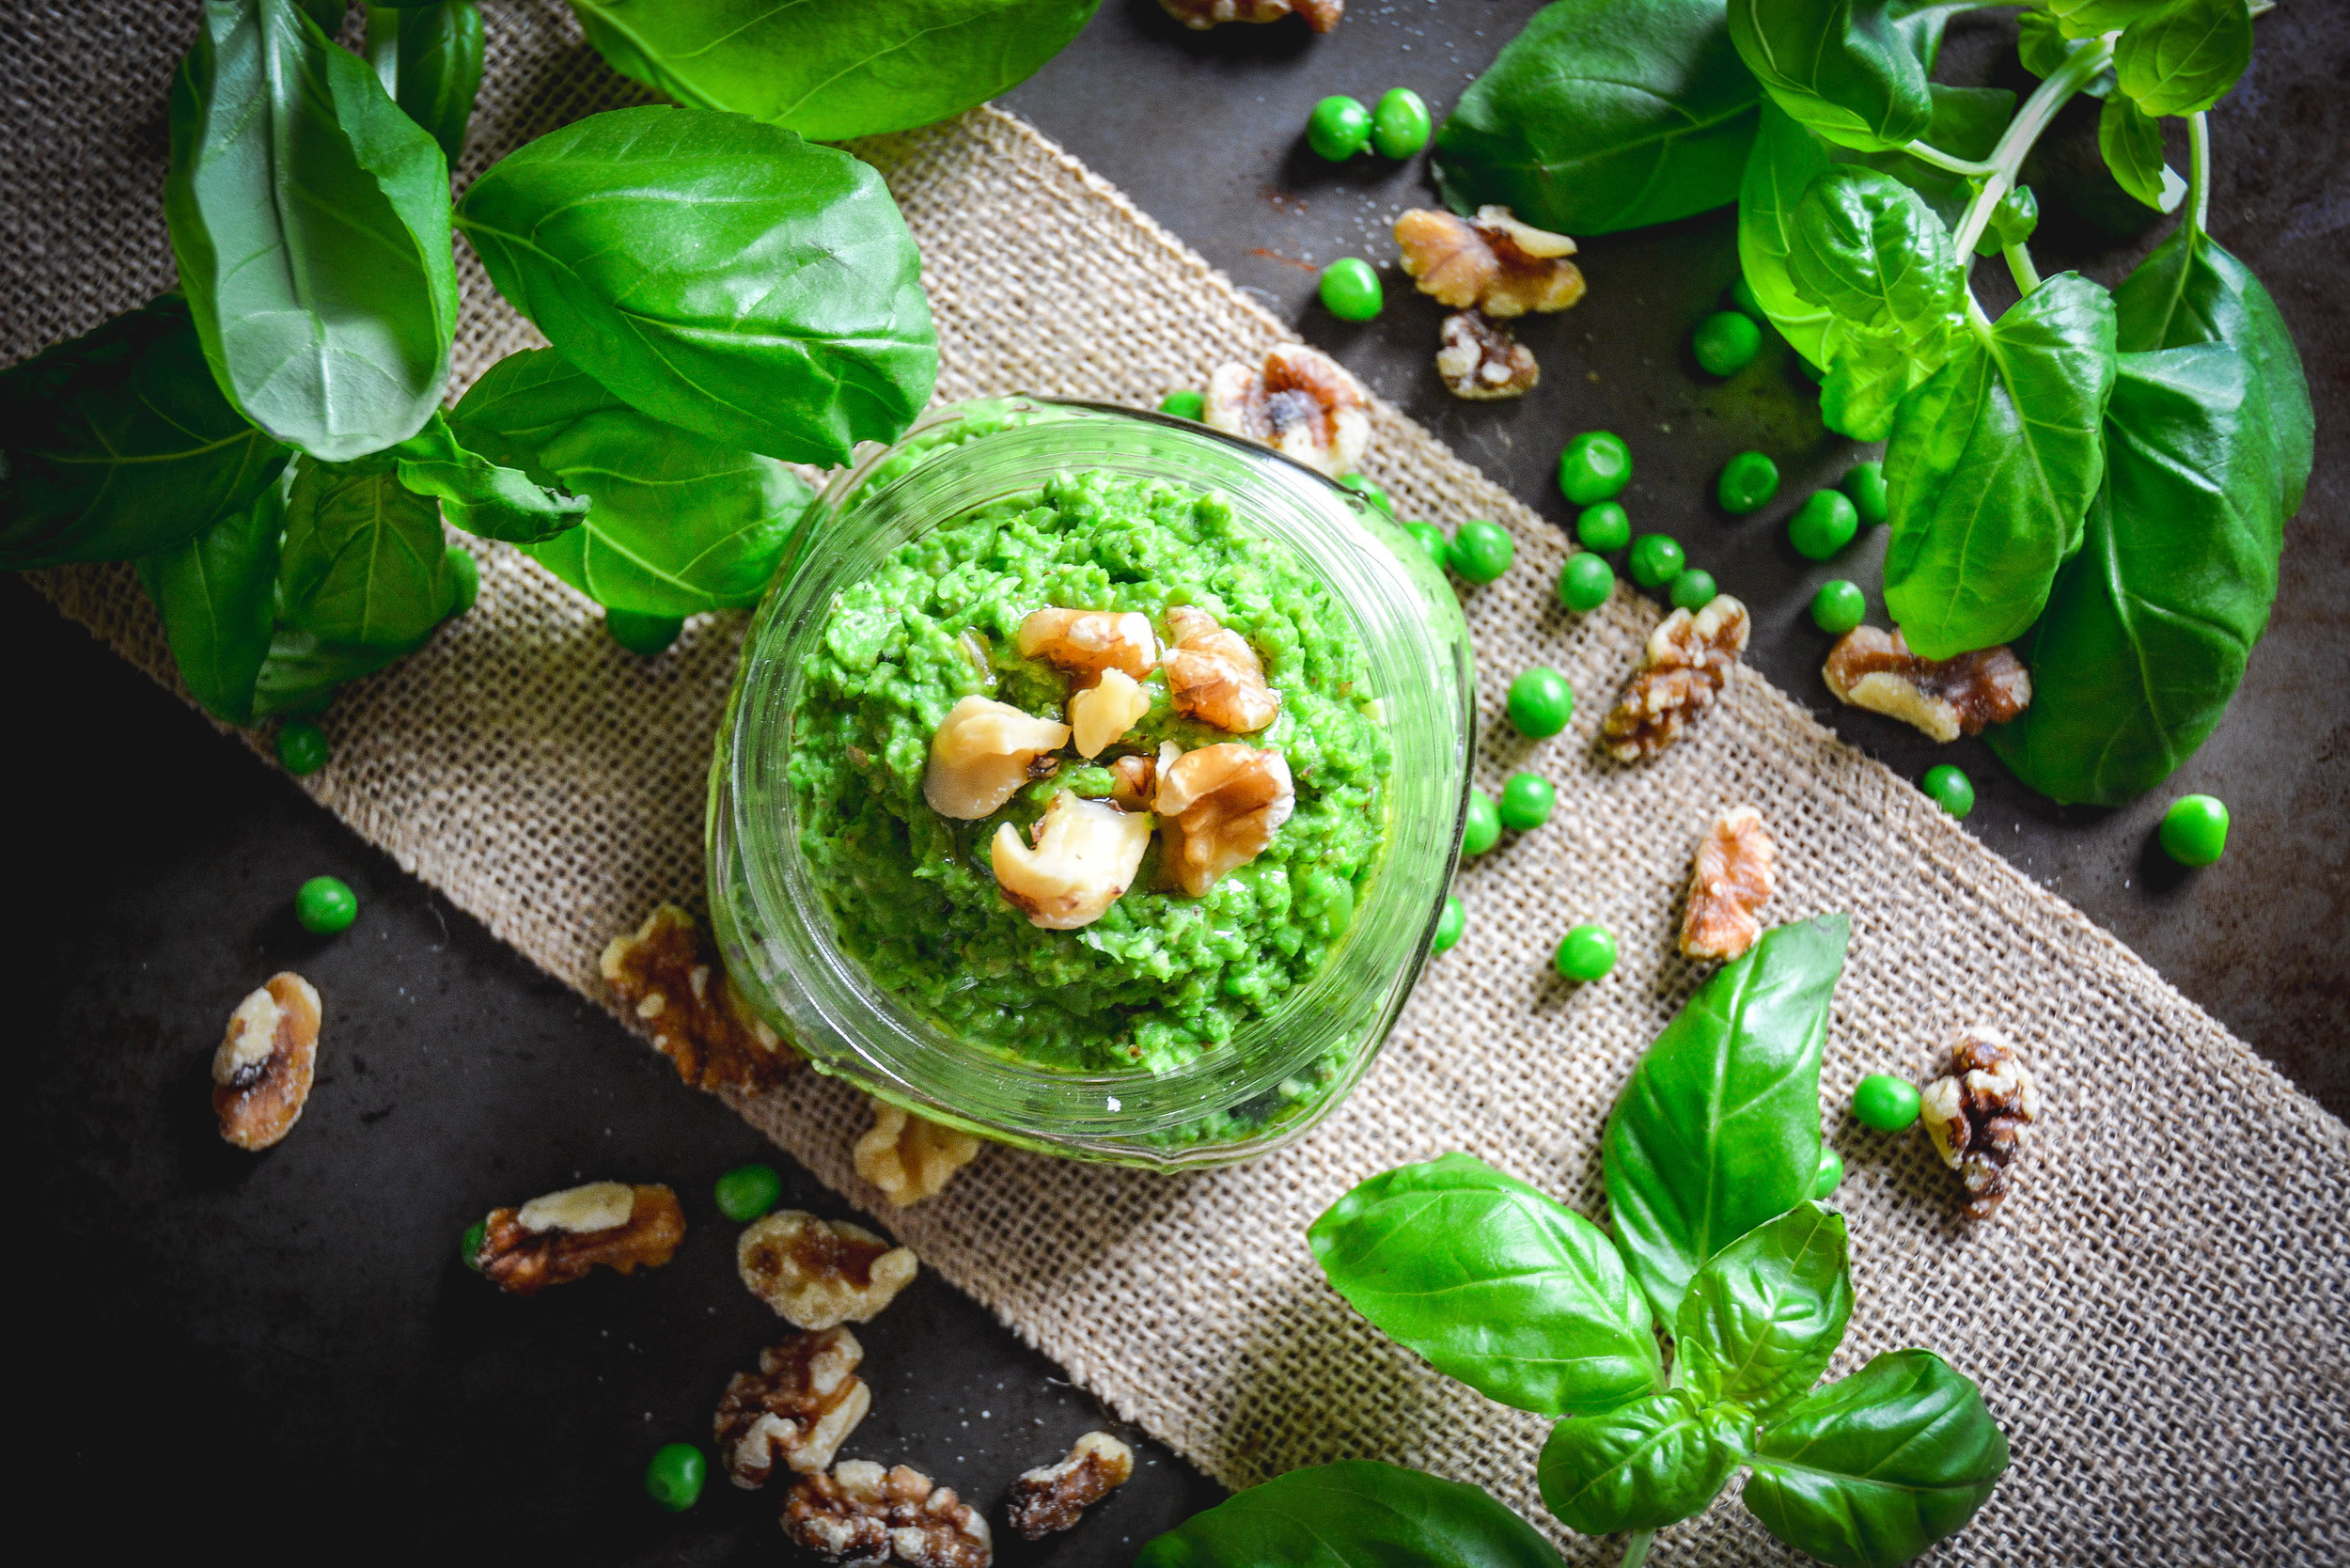 Pea pesto, basil and walnuts on table shot from above